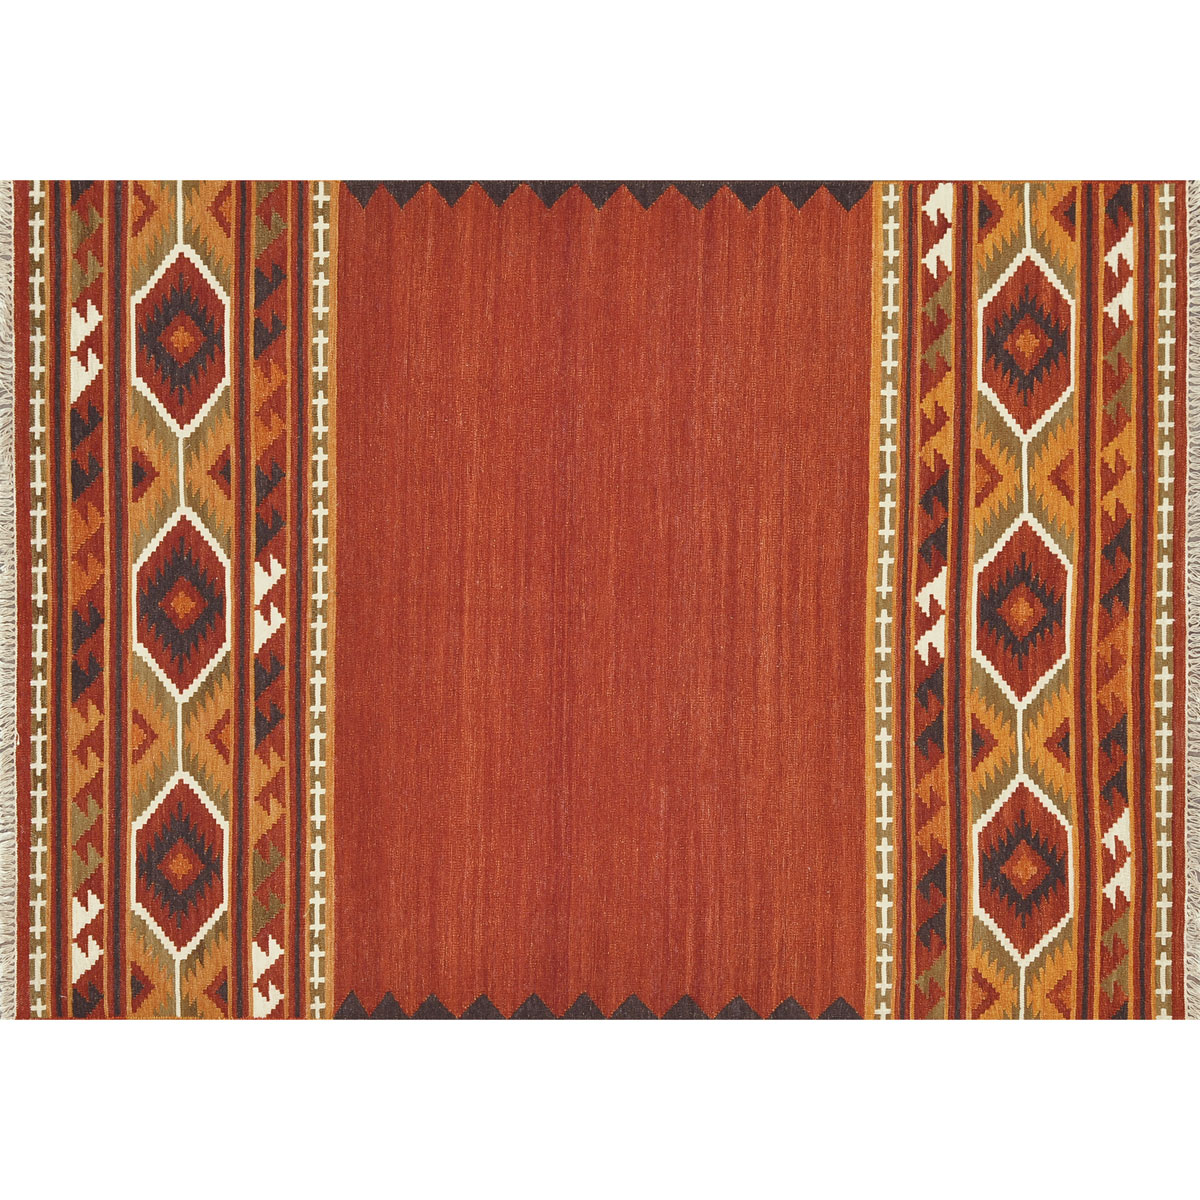 Isara Red Gold Rug - 5 x 8